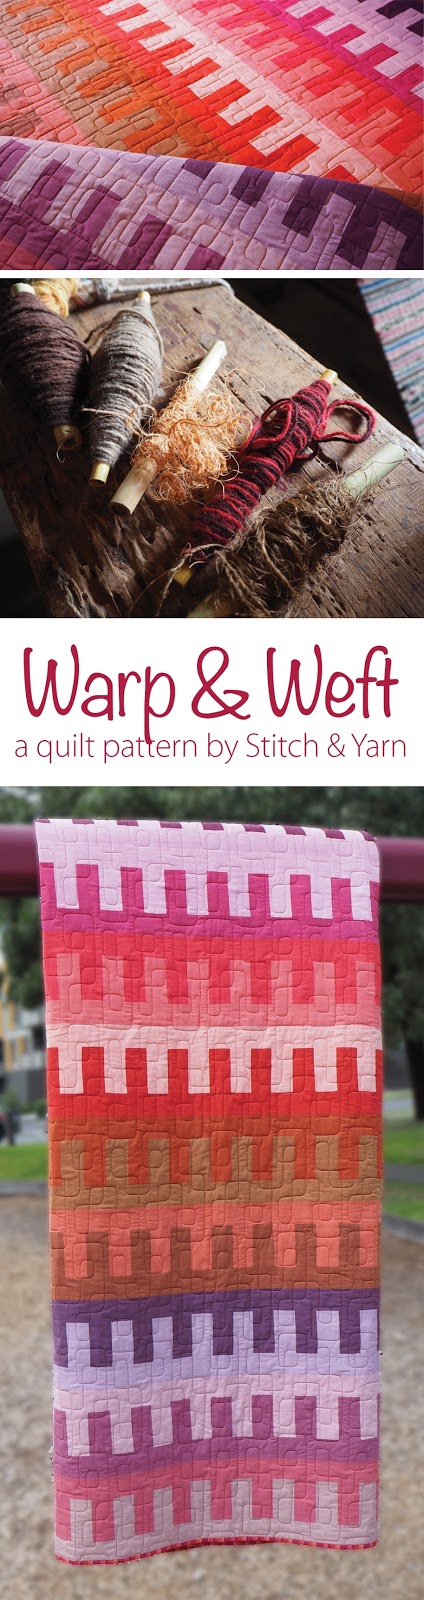 Warp and Weft quilt pattern